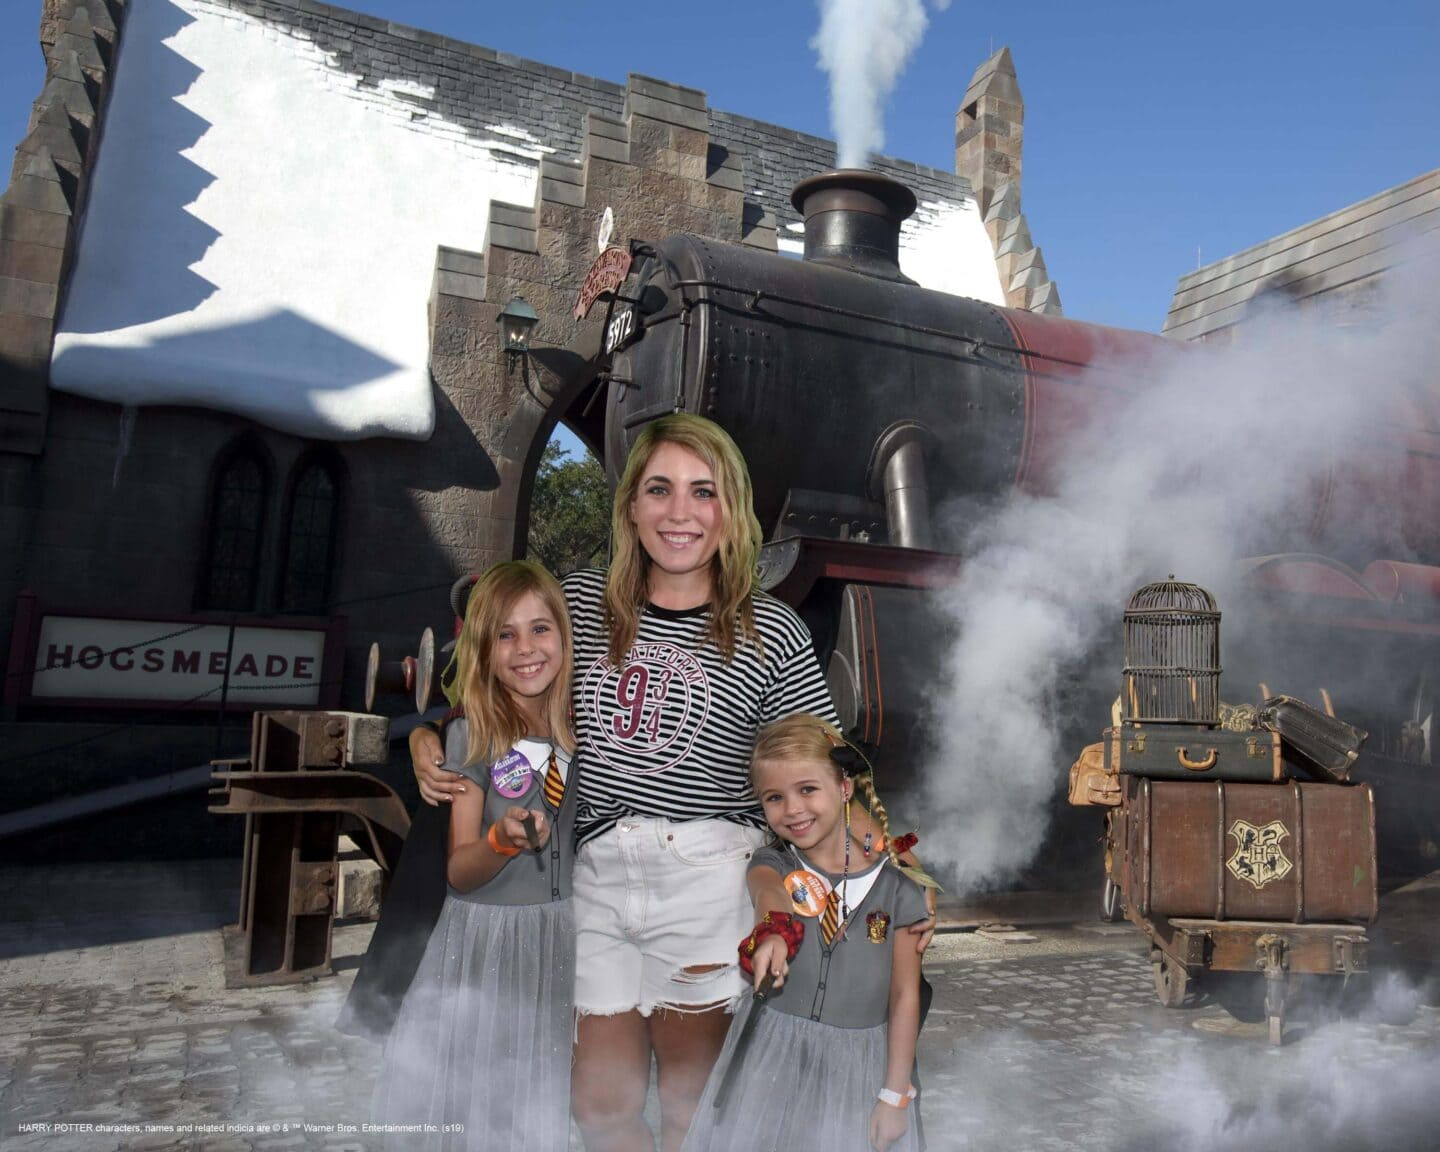 the wizarding world of Harry Potter shutter button photo studio